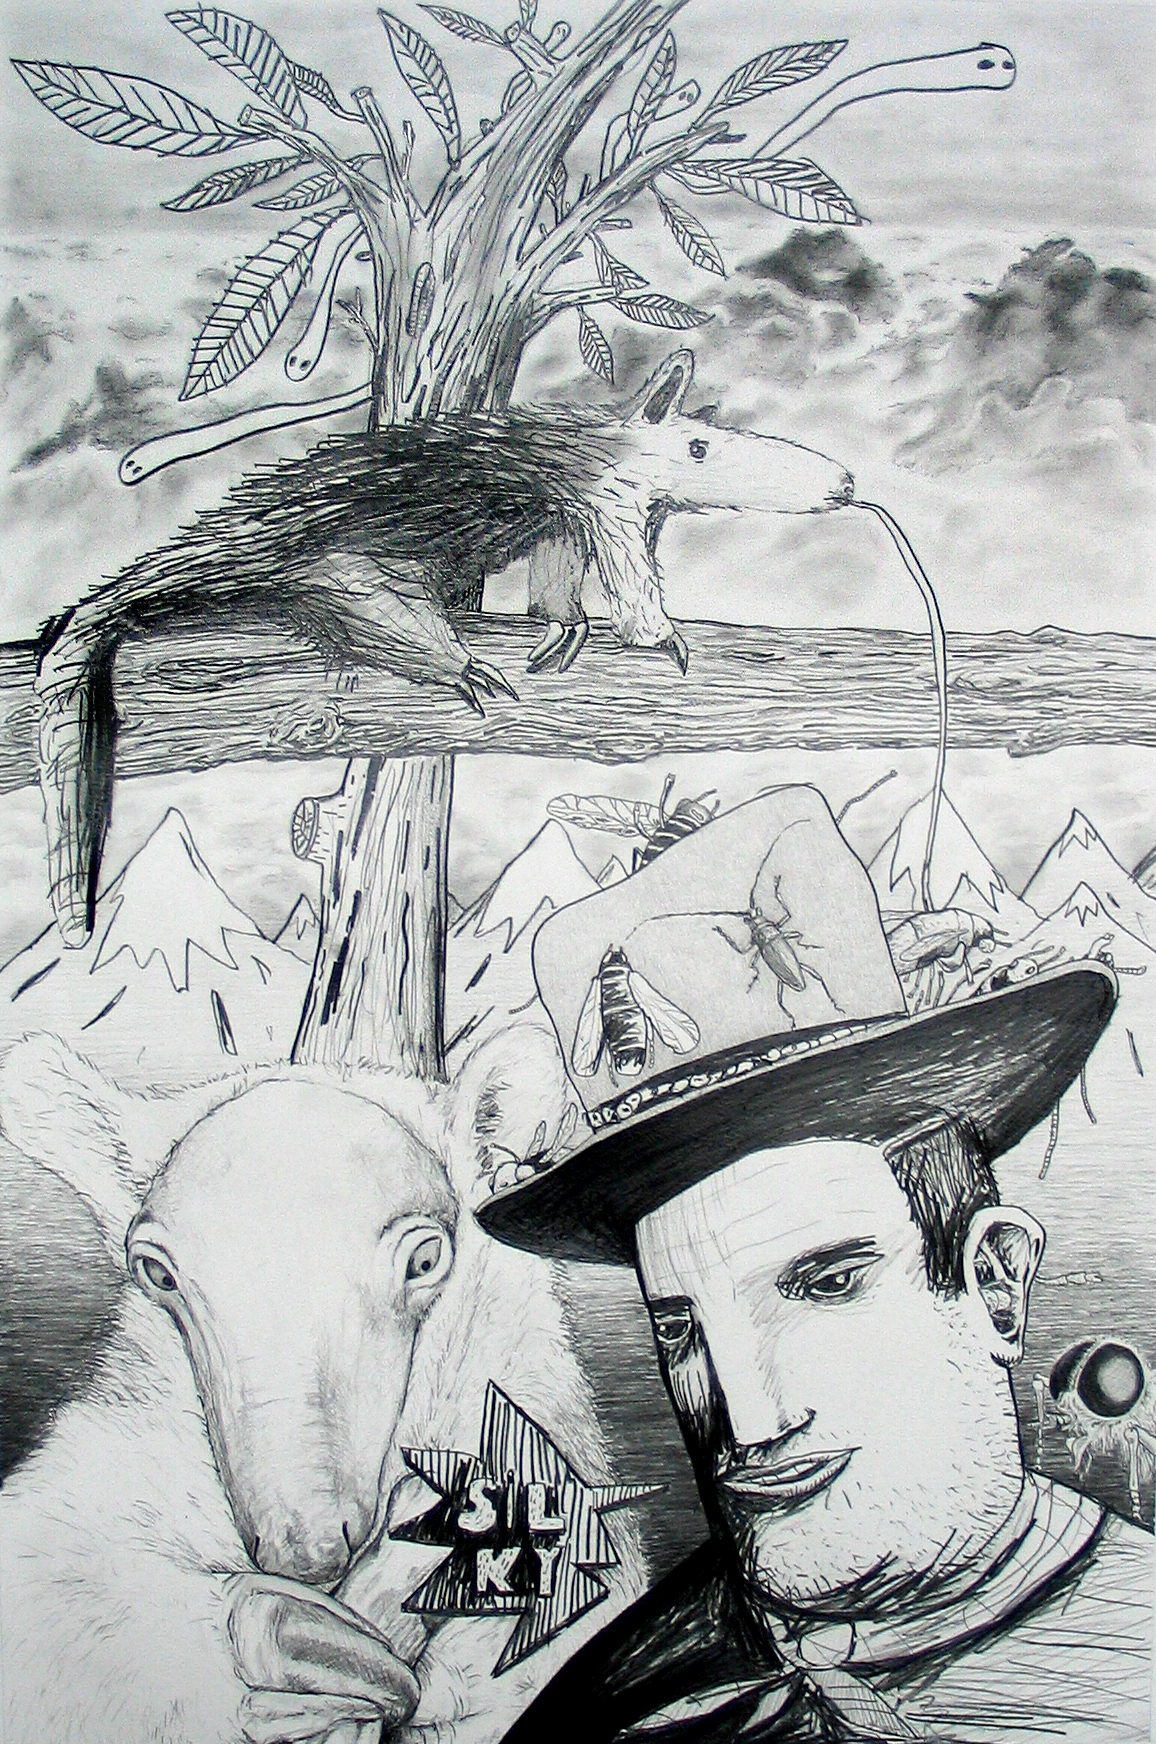 John Wayne and Silky 2007 Pencil on paper 50x70cm